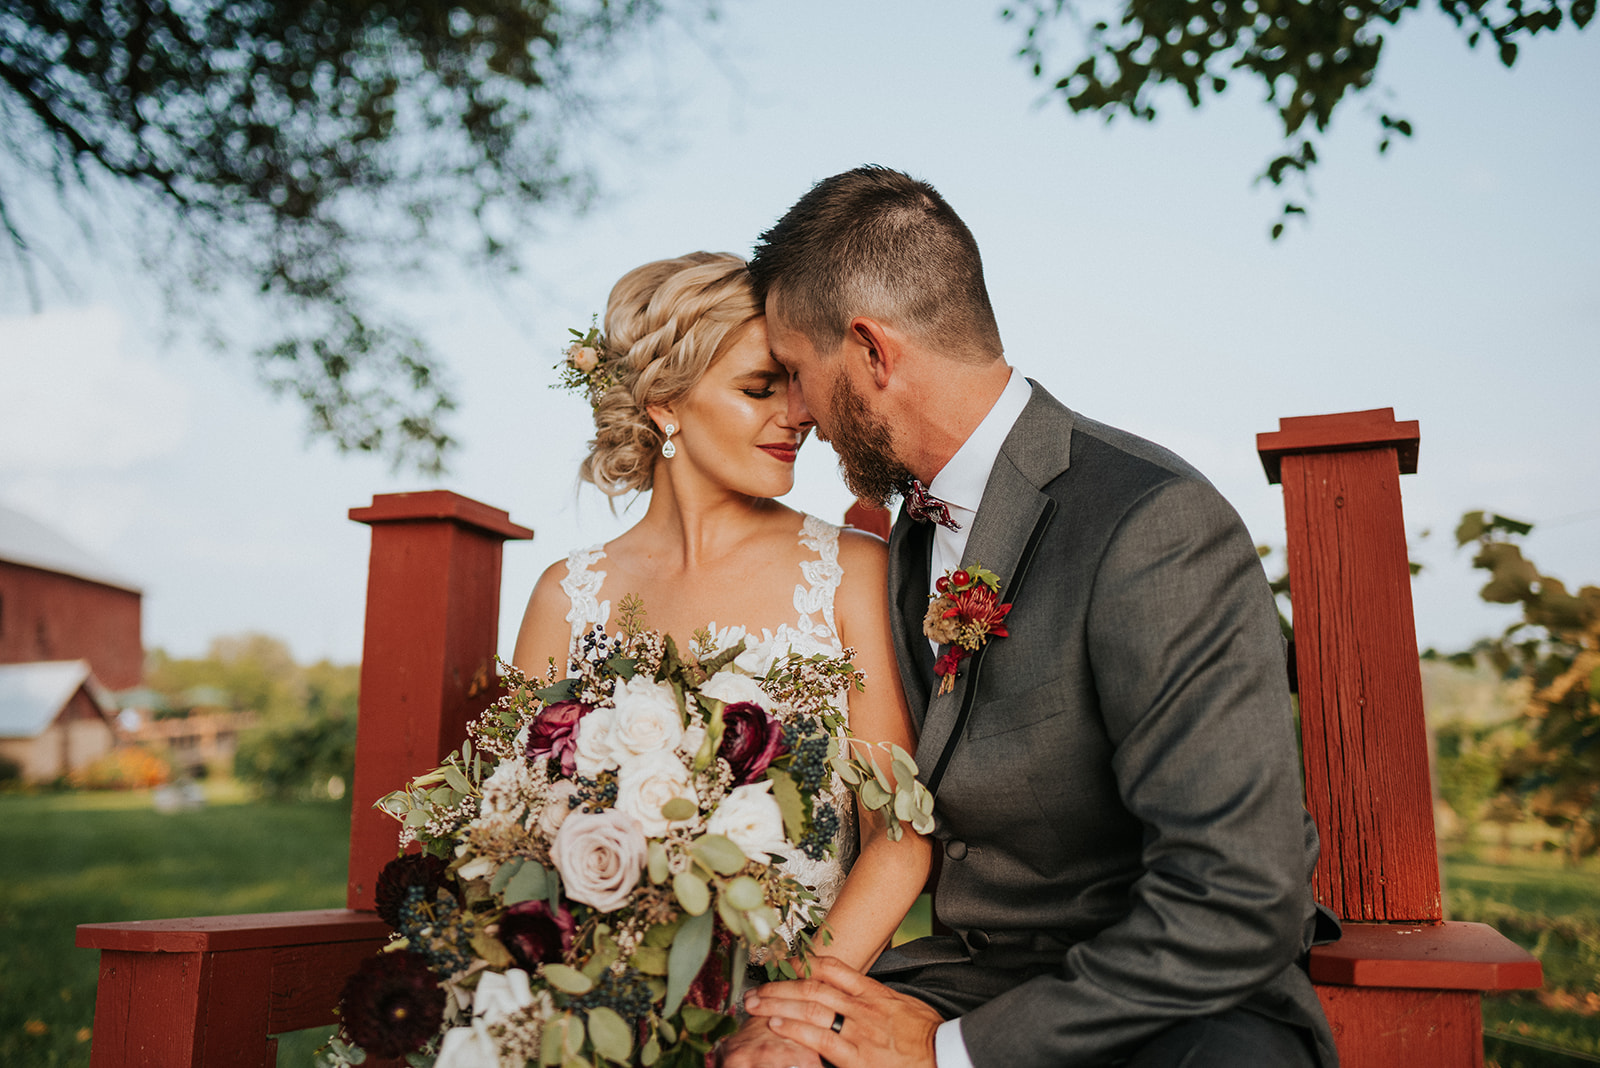 overthevineswisconsinwedding_0960.jpg